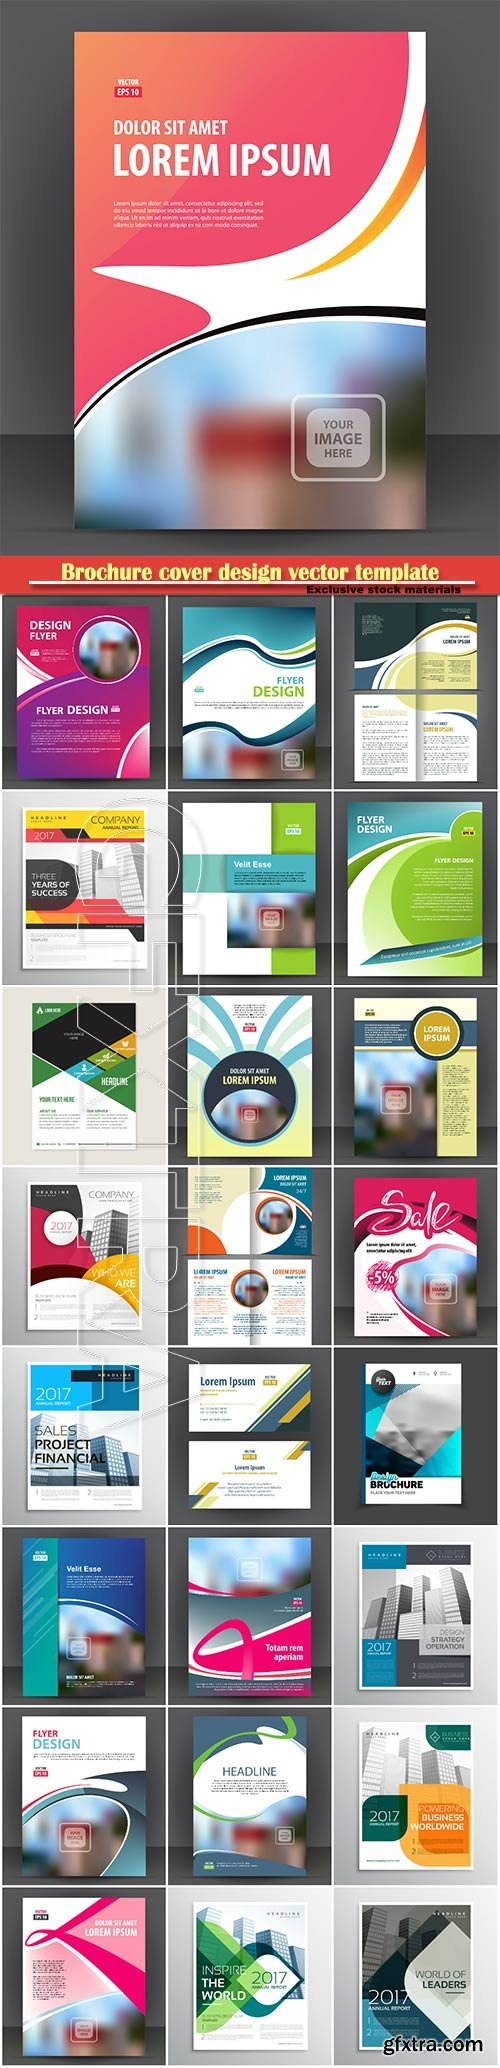 Brochure cover design vector template # 17